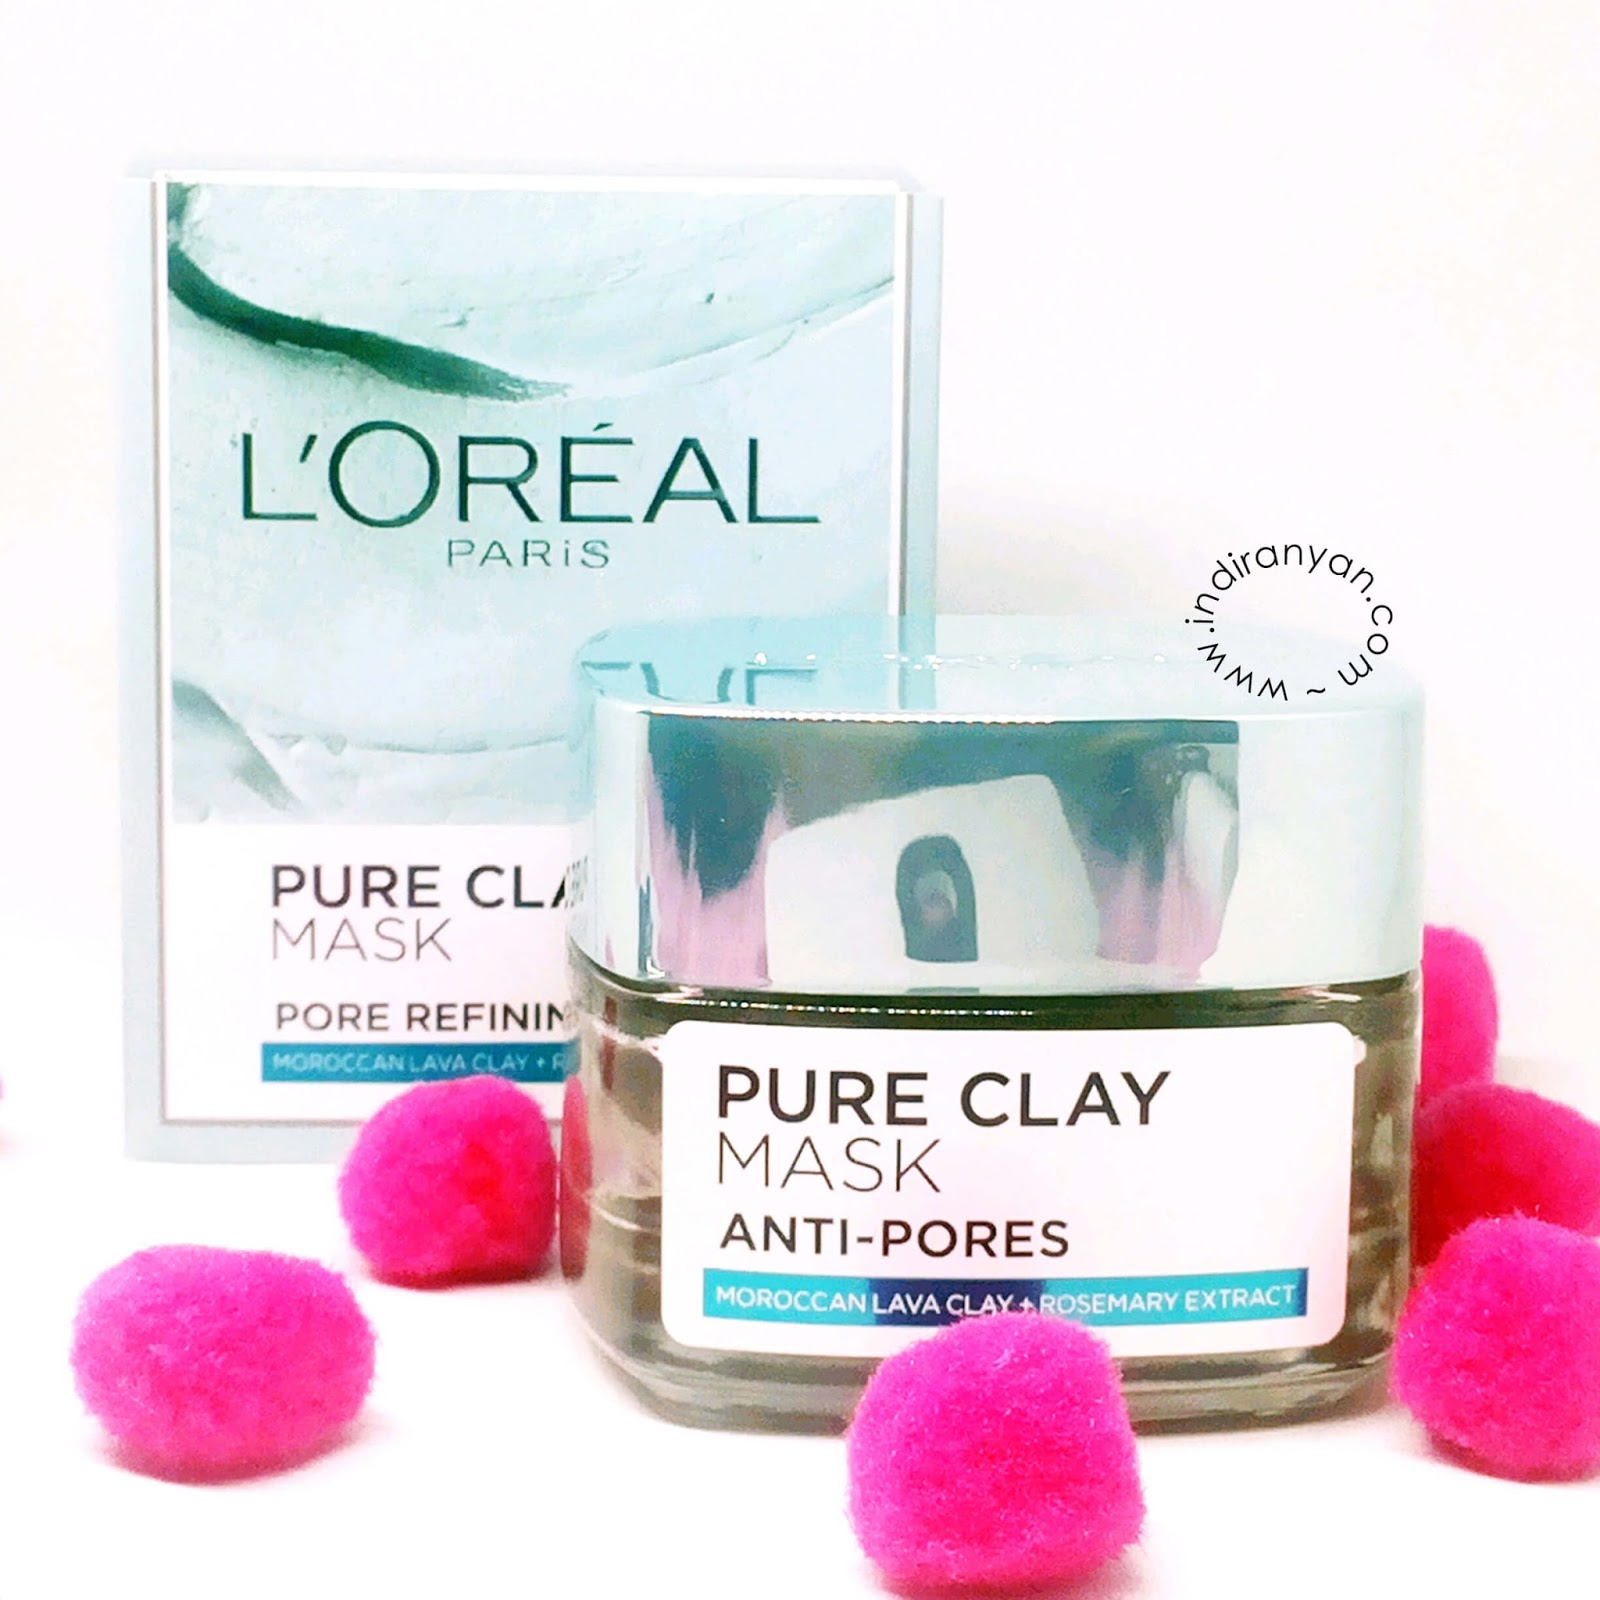 Loreal-pure-clay-mask-pore-refining-indonesia, review-clay-mask-loreal, review-masker-loreal, loreal-pure-clay-mask-anti-pores-review, Loreal-pure-clay-mask-pore-refining-review-indonesia